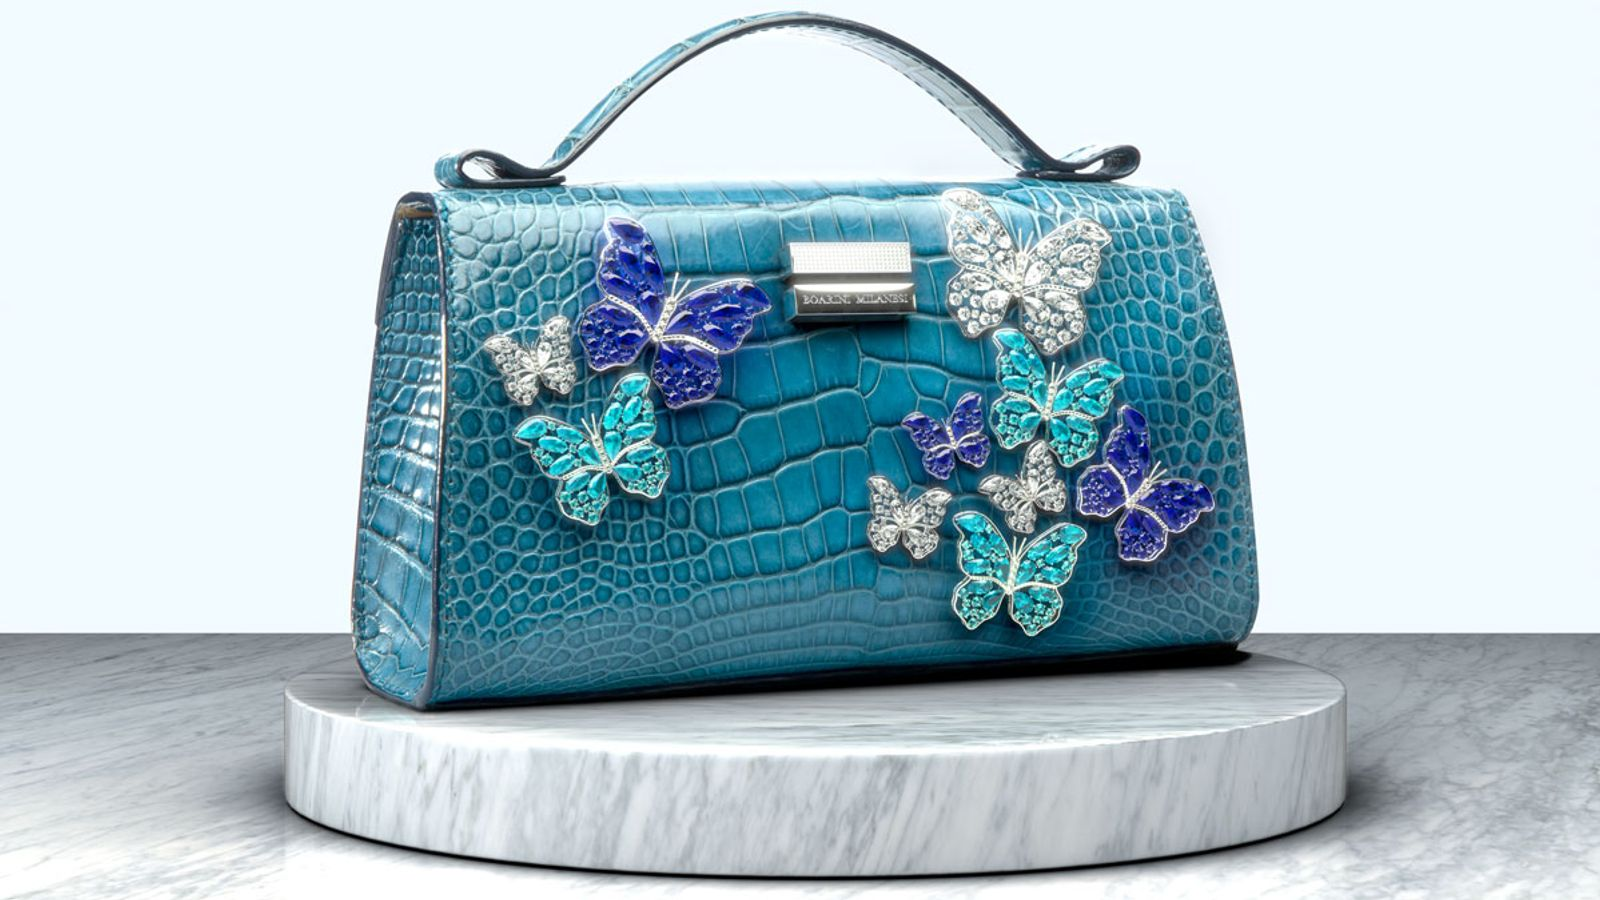 most expensive handbag 2021